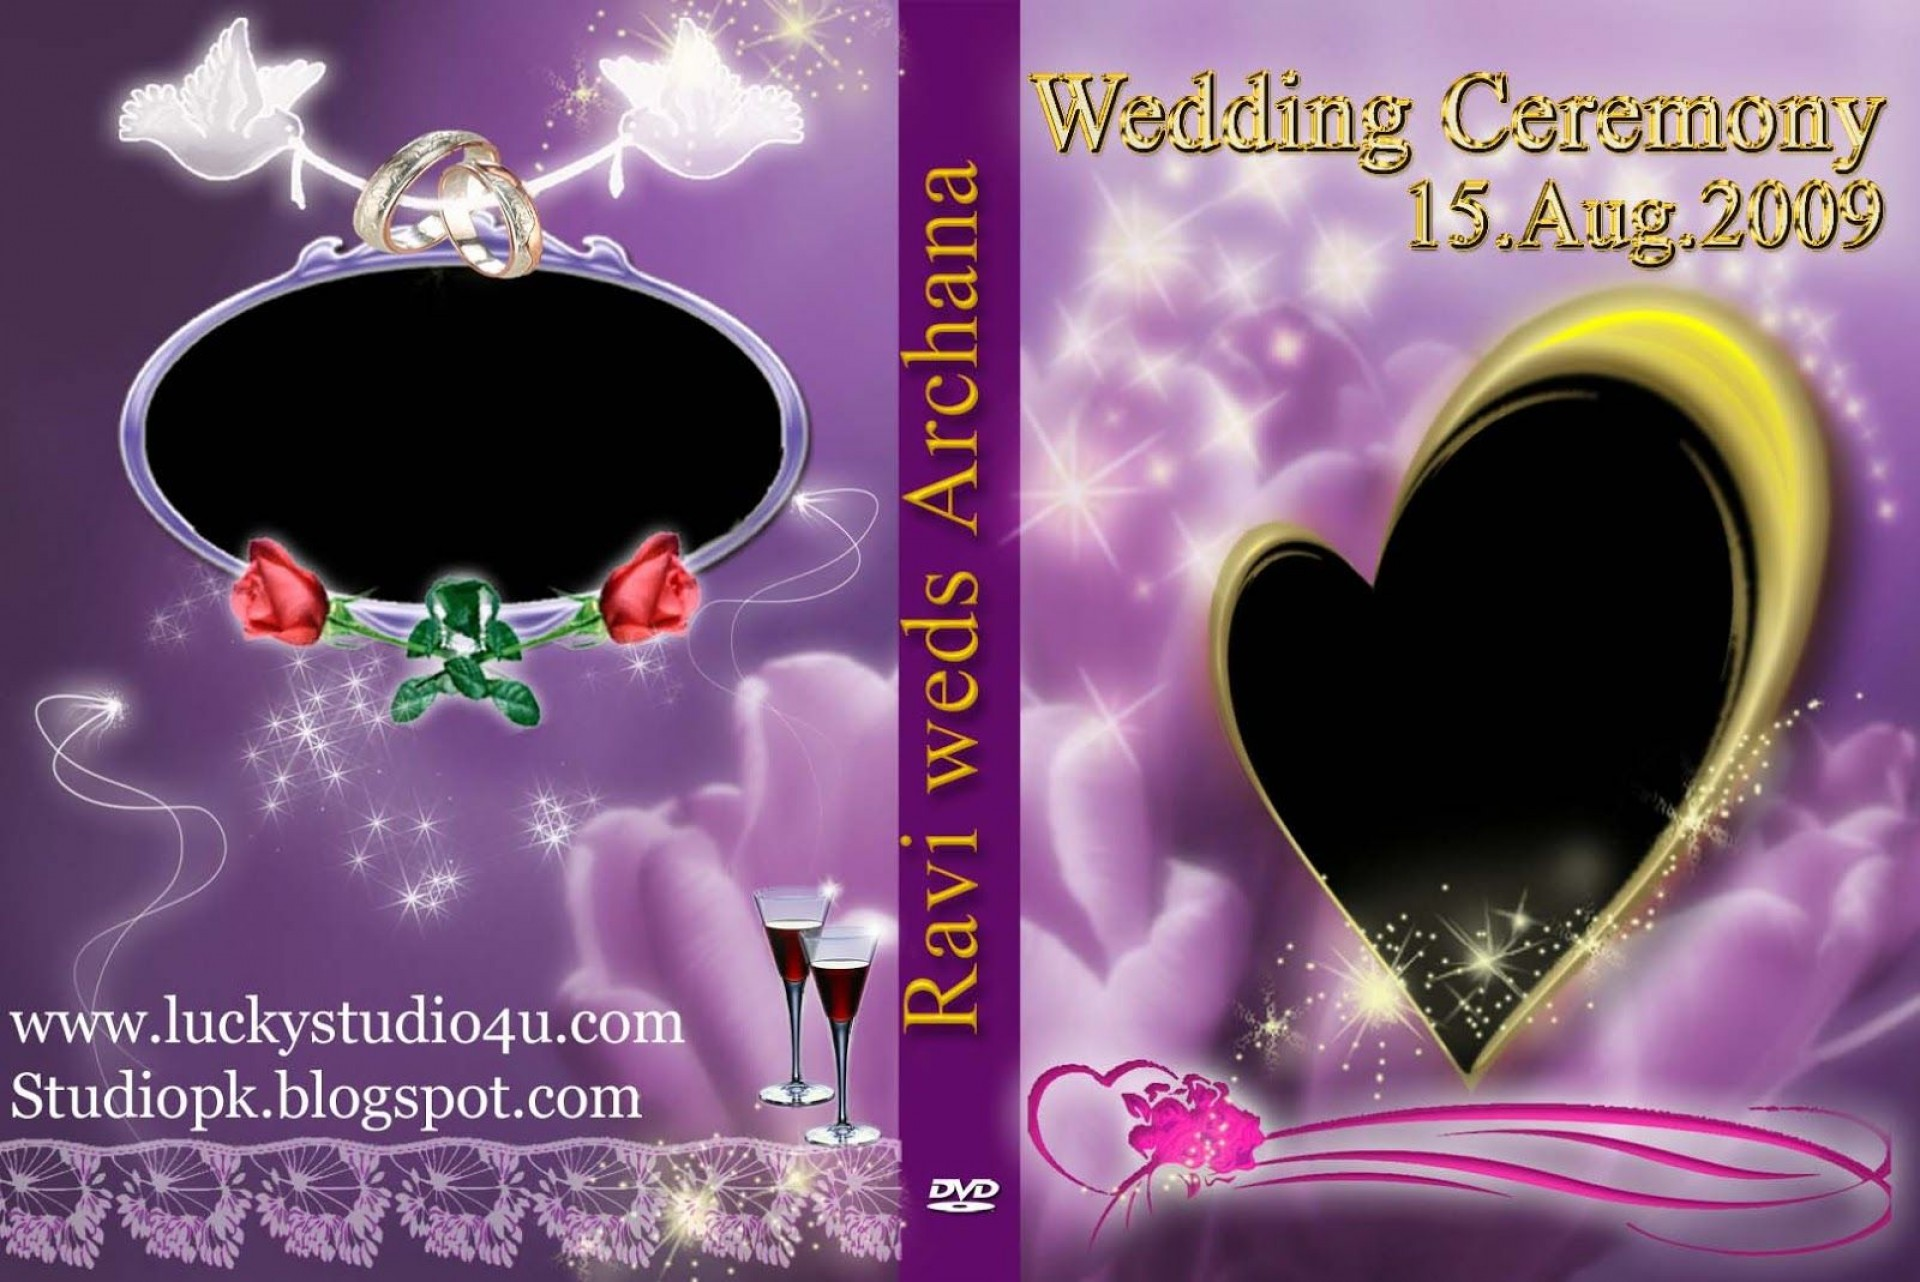 006 Fascinating Wedding Cd Cover Design Template Free Download Picture 1920